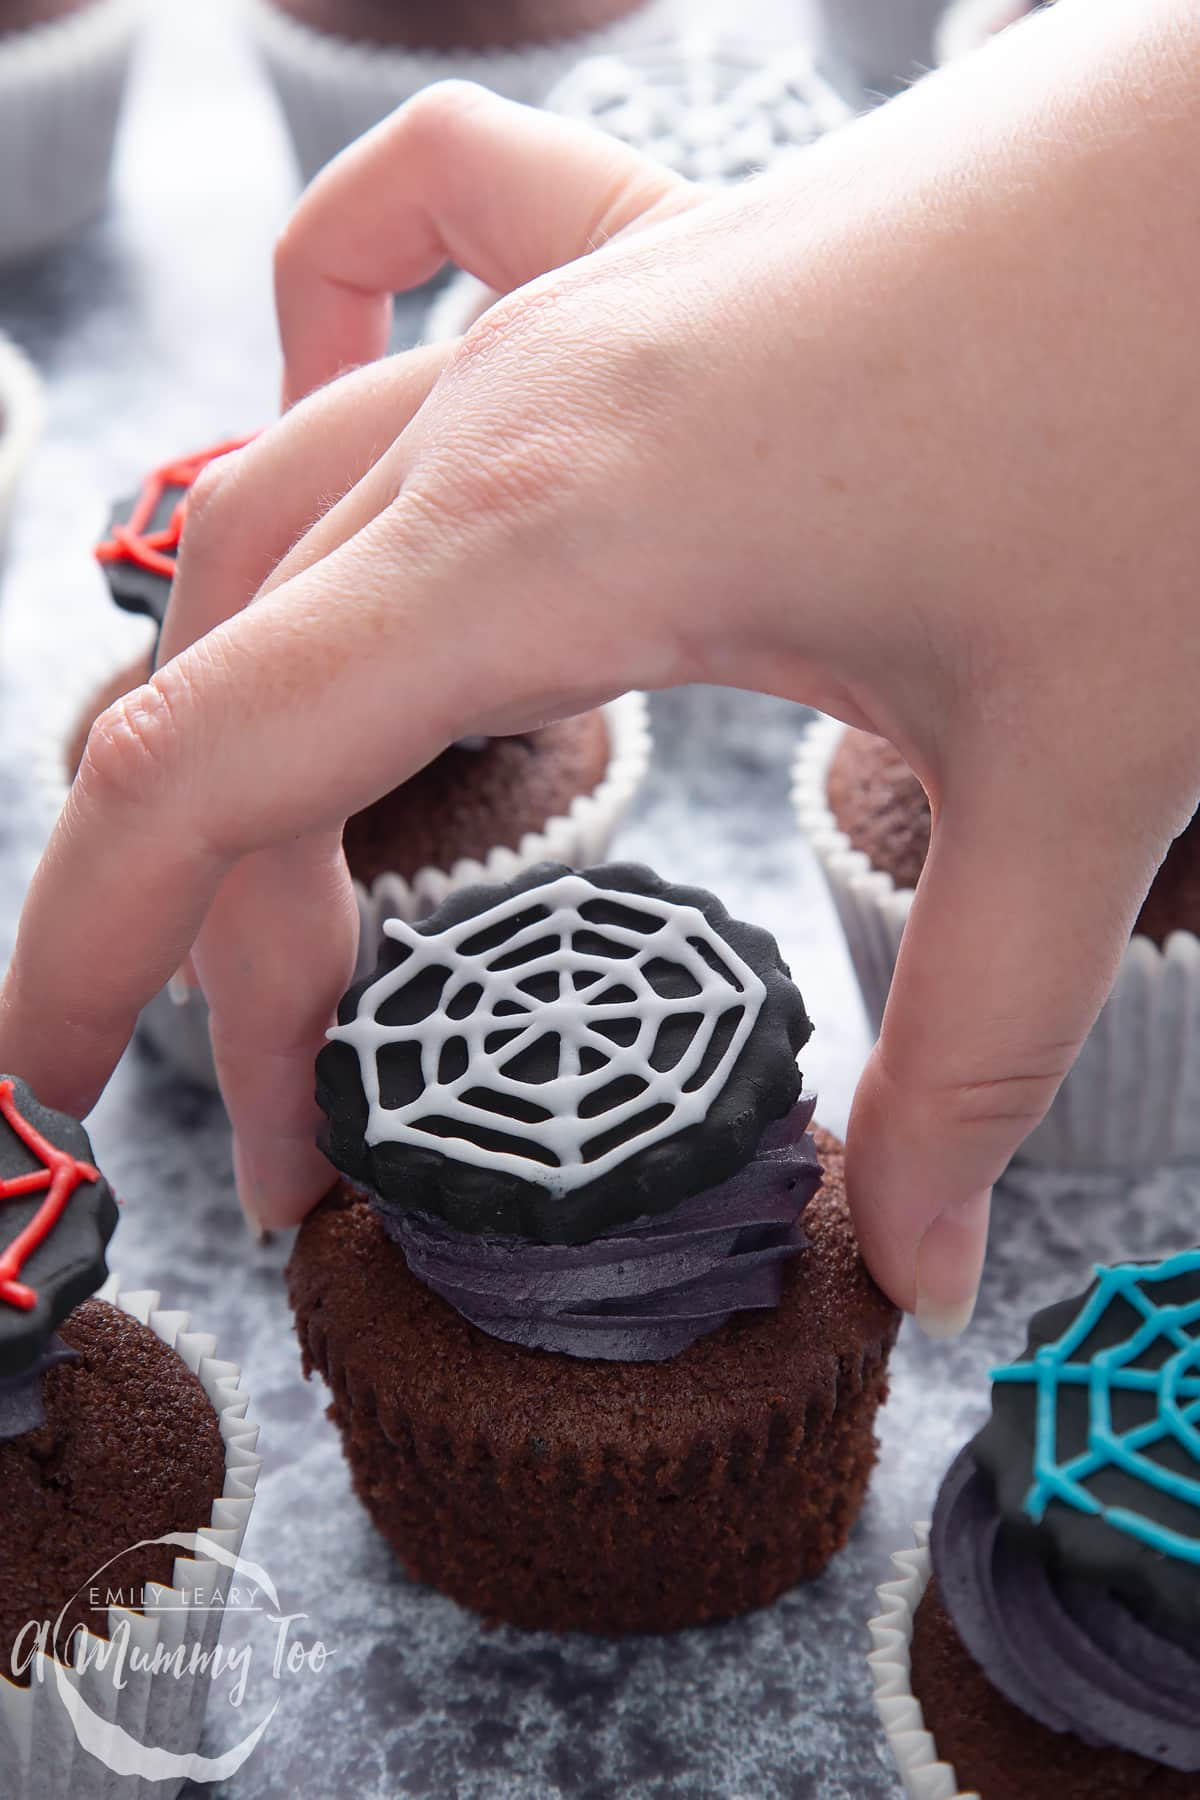 Spider web cupcakes arranged on a black surface. The chocolate sponge cupcakes are topped with purple vanilla buttercream and discs of black sugar paste decorated with spider web icing. A hand reaches to take an unwrapped one.